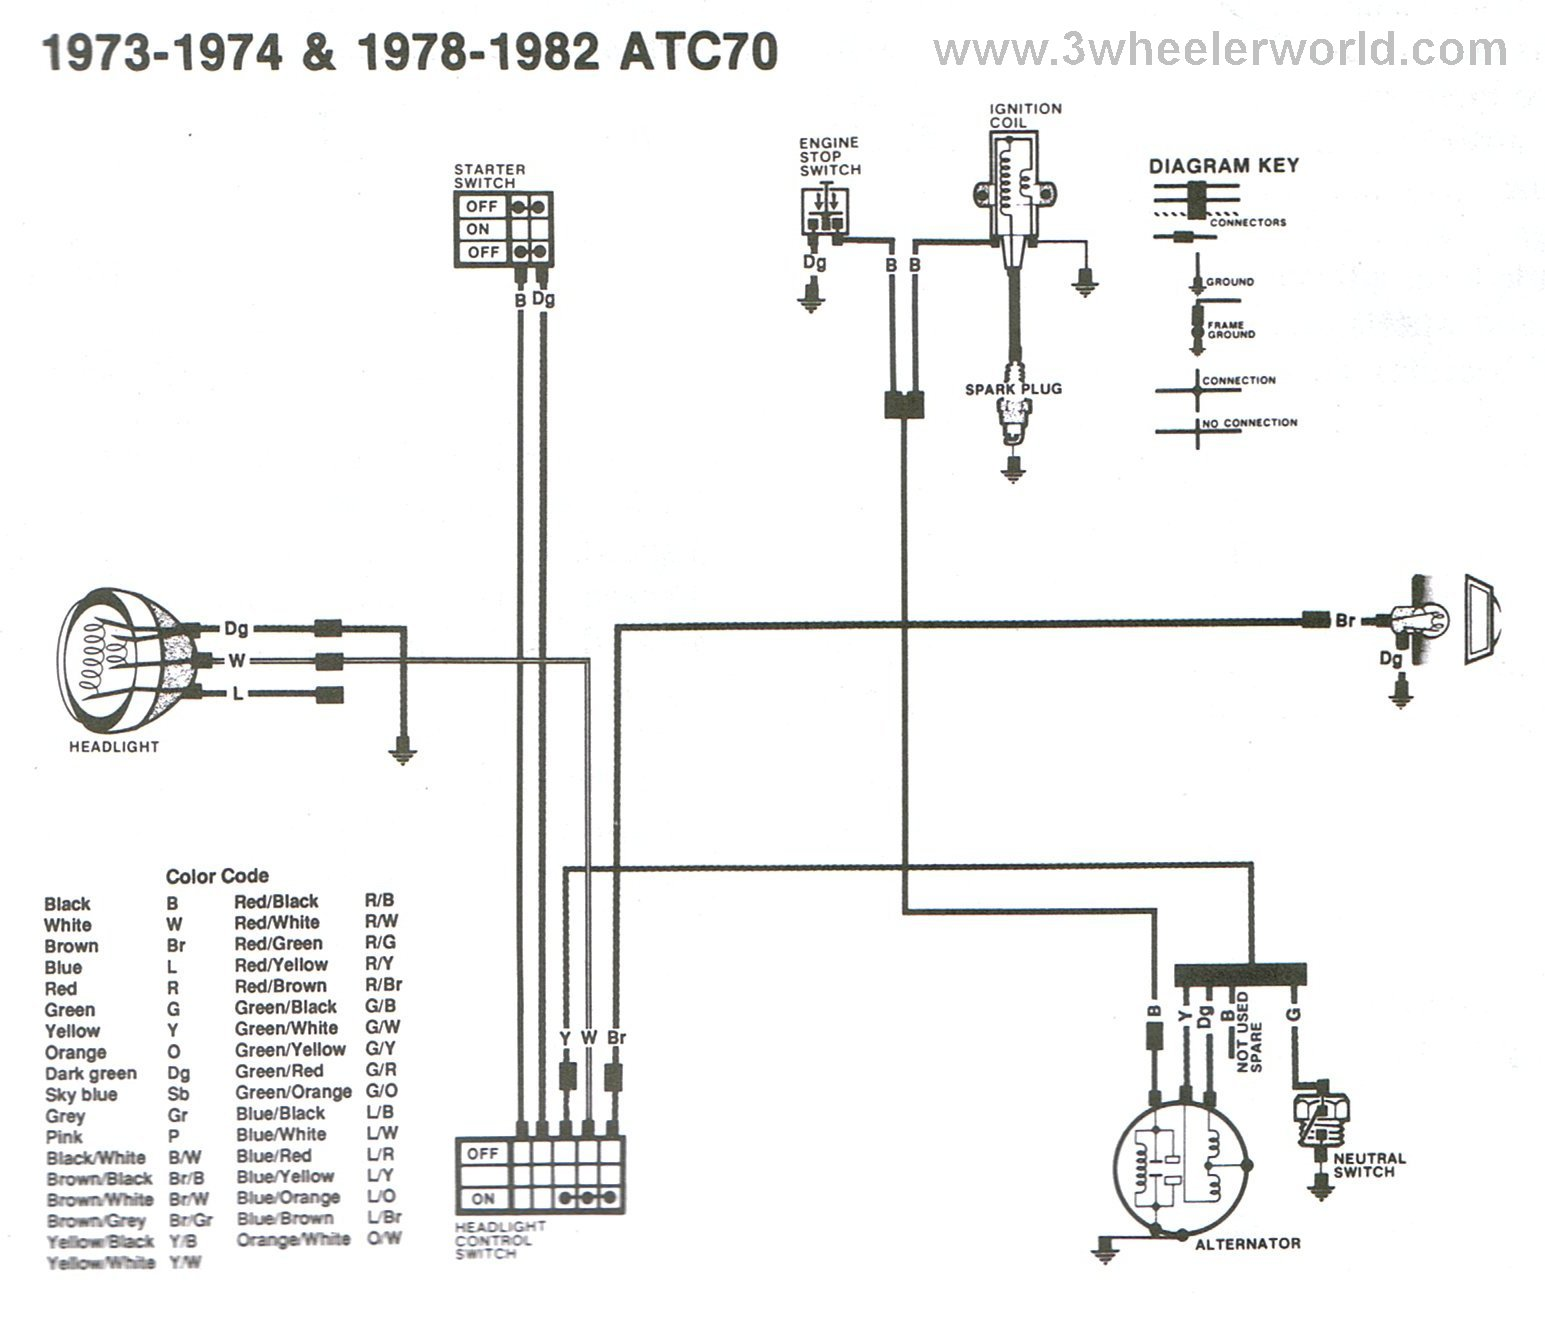 post 4946 1235948993 atc 70 wiring diagram honda 70 talk dumont dune riders atc 70 wiring diagram at honlapkeszites.co